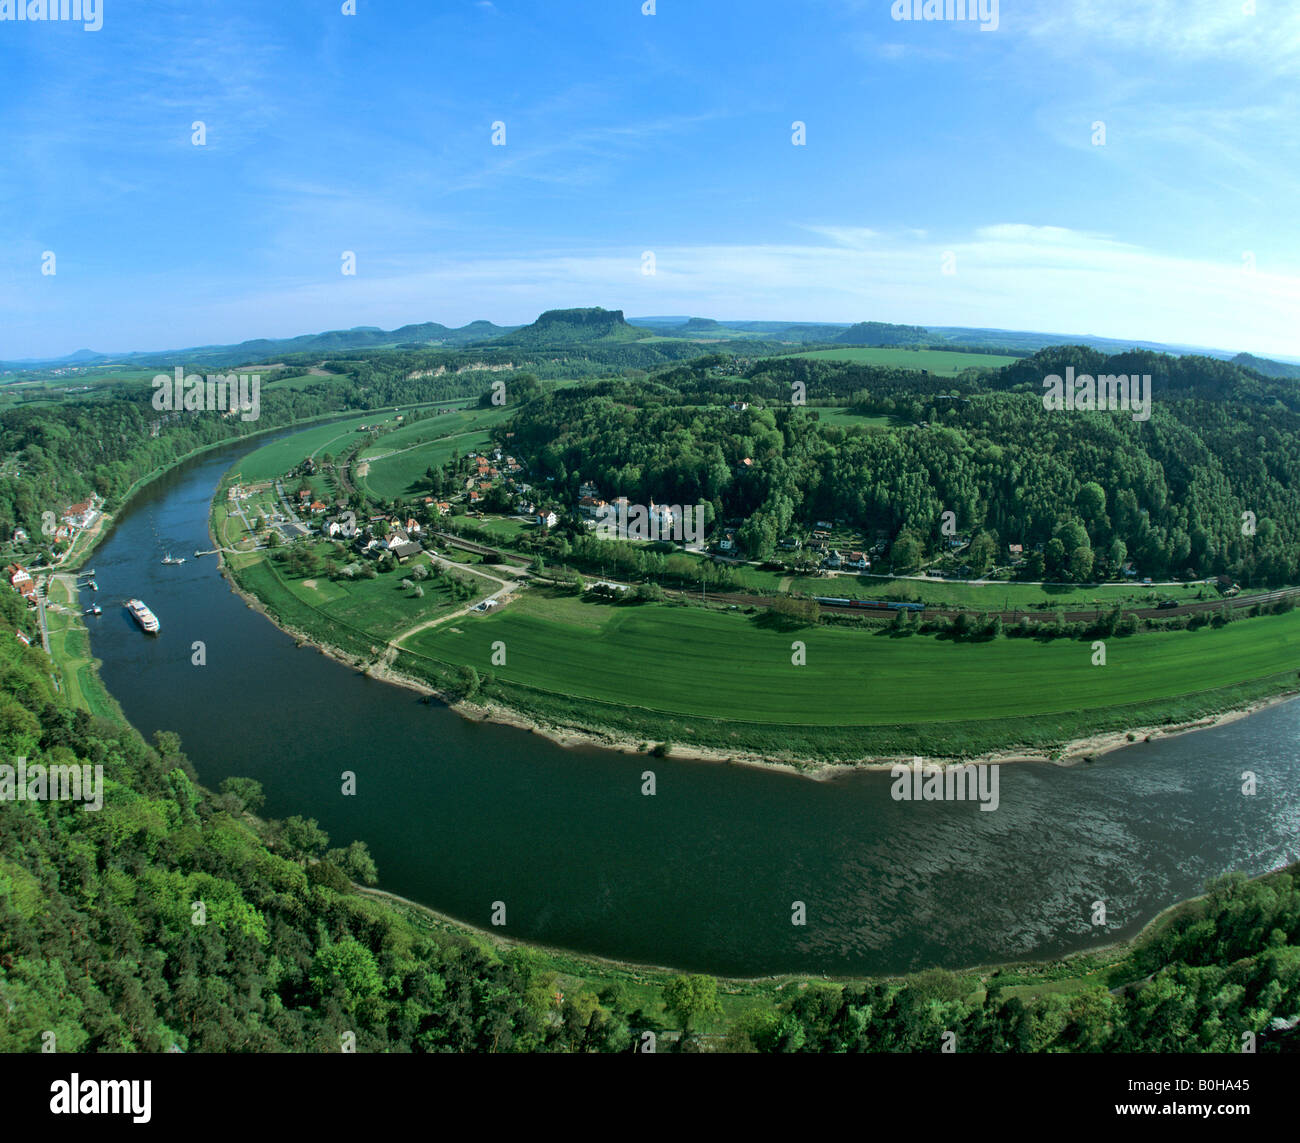 Elbe Sandstone Mountains, bastion, view of Rathen, Oberrathen district, Elbe River, Saxon Switzerland, Saxony, Germany - Stock Image